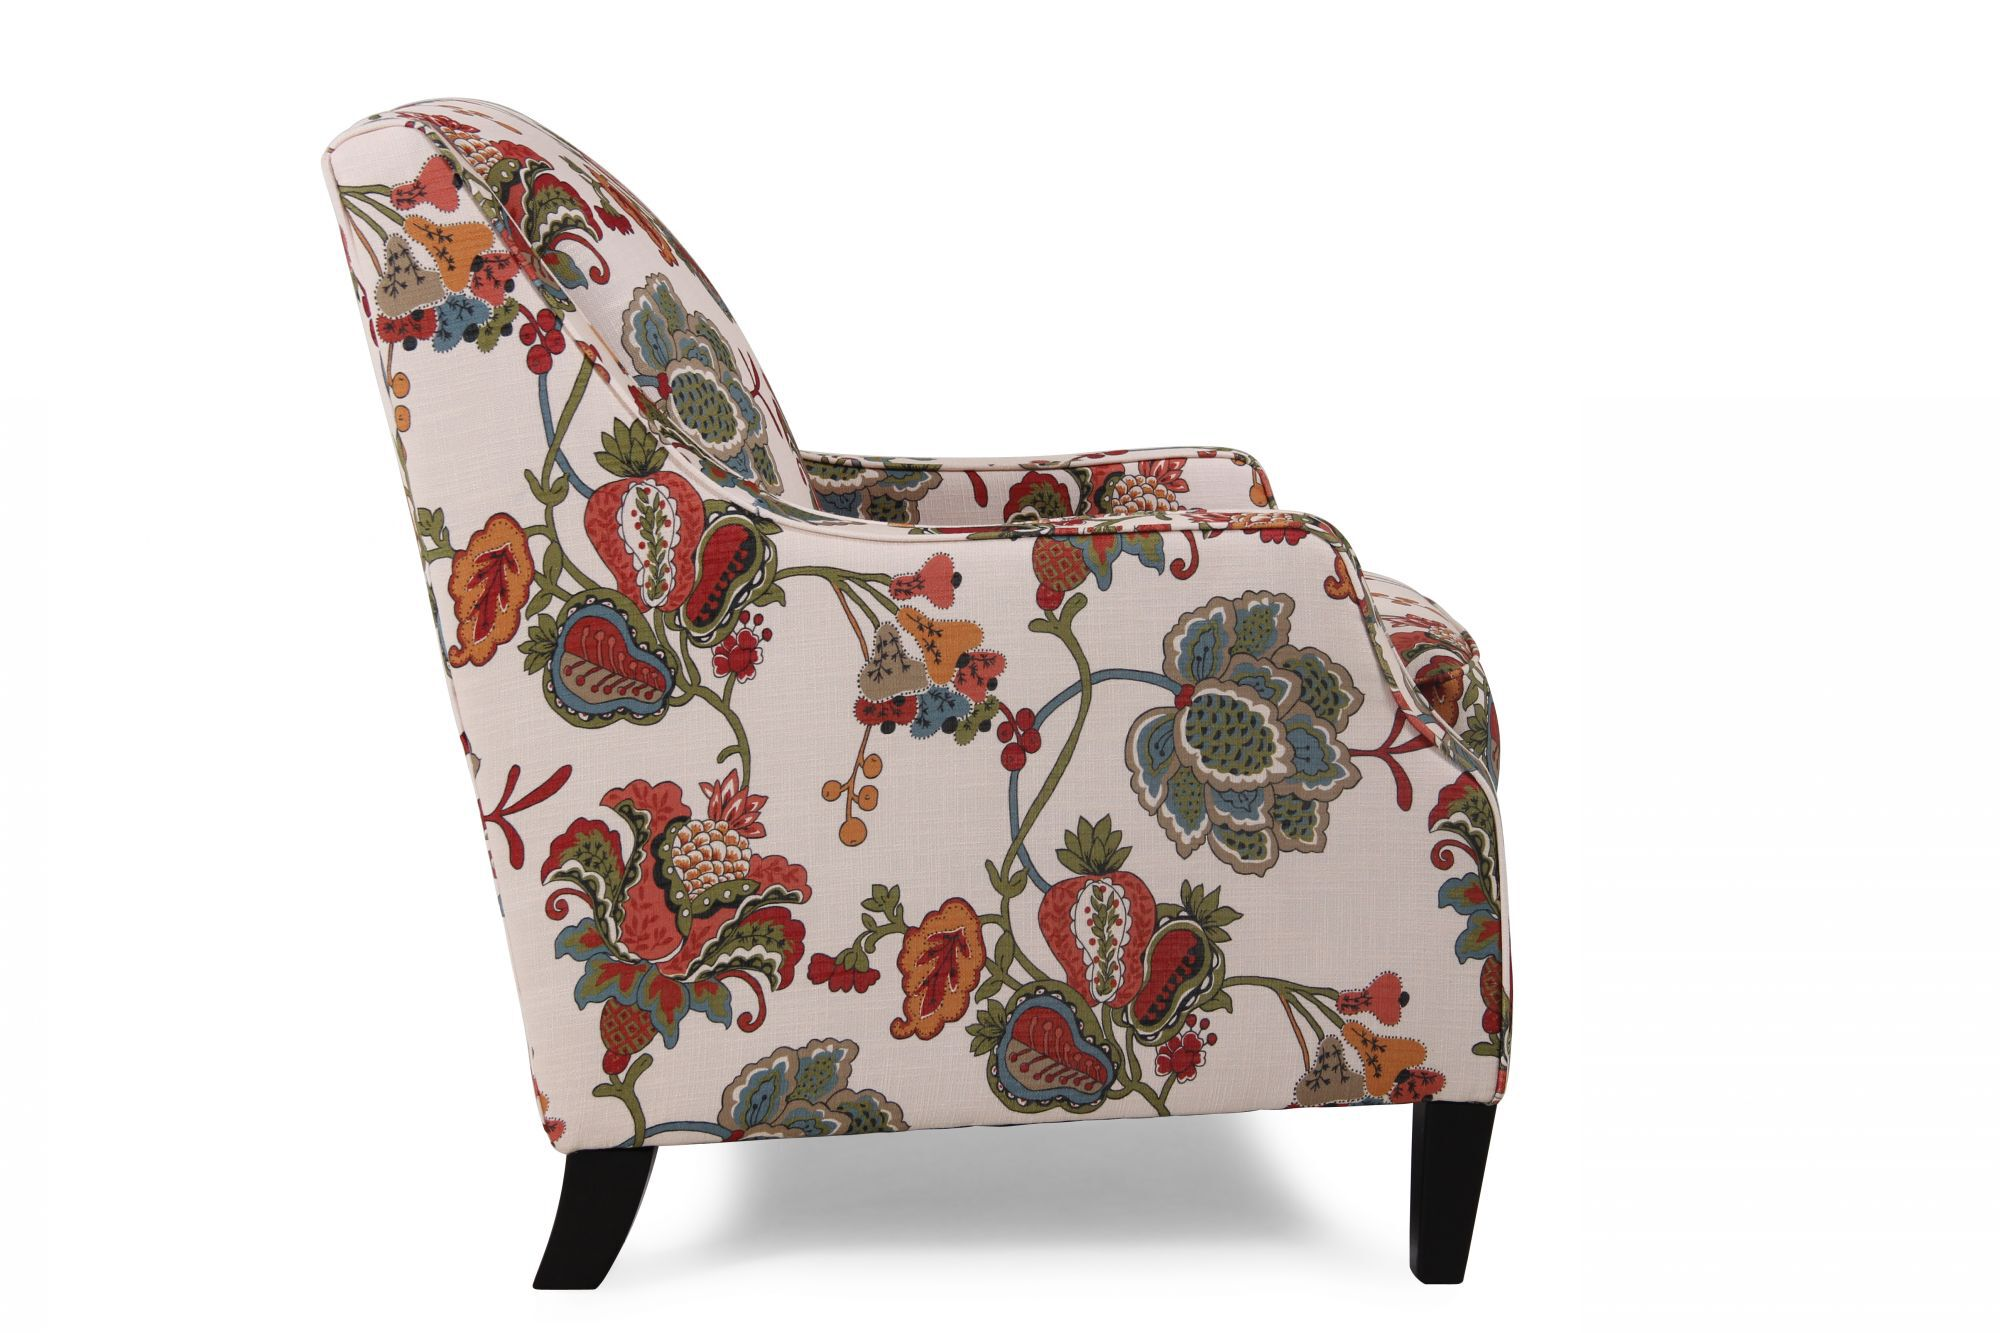 home decor accent chairs mickey mouse sofa chair floral patterned transitional 30 quot in cream